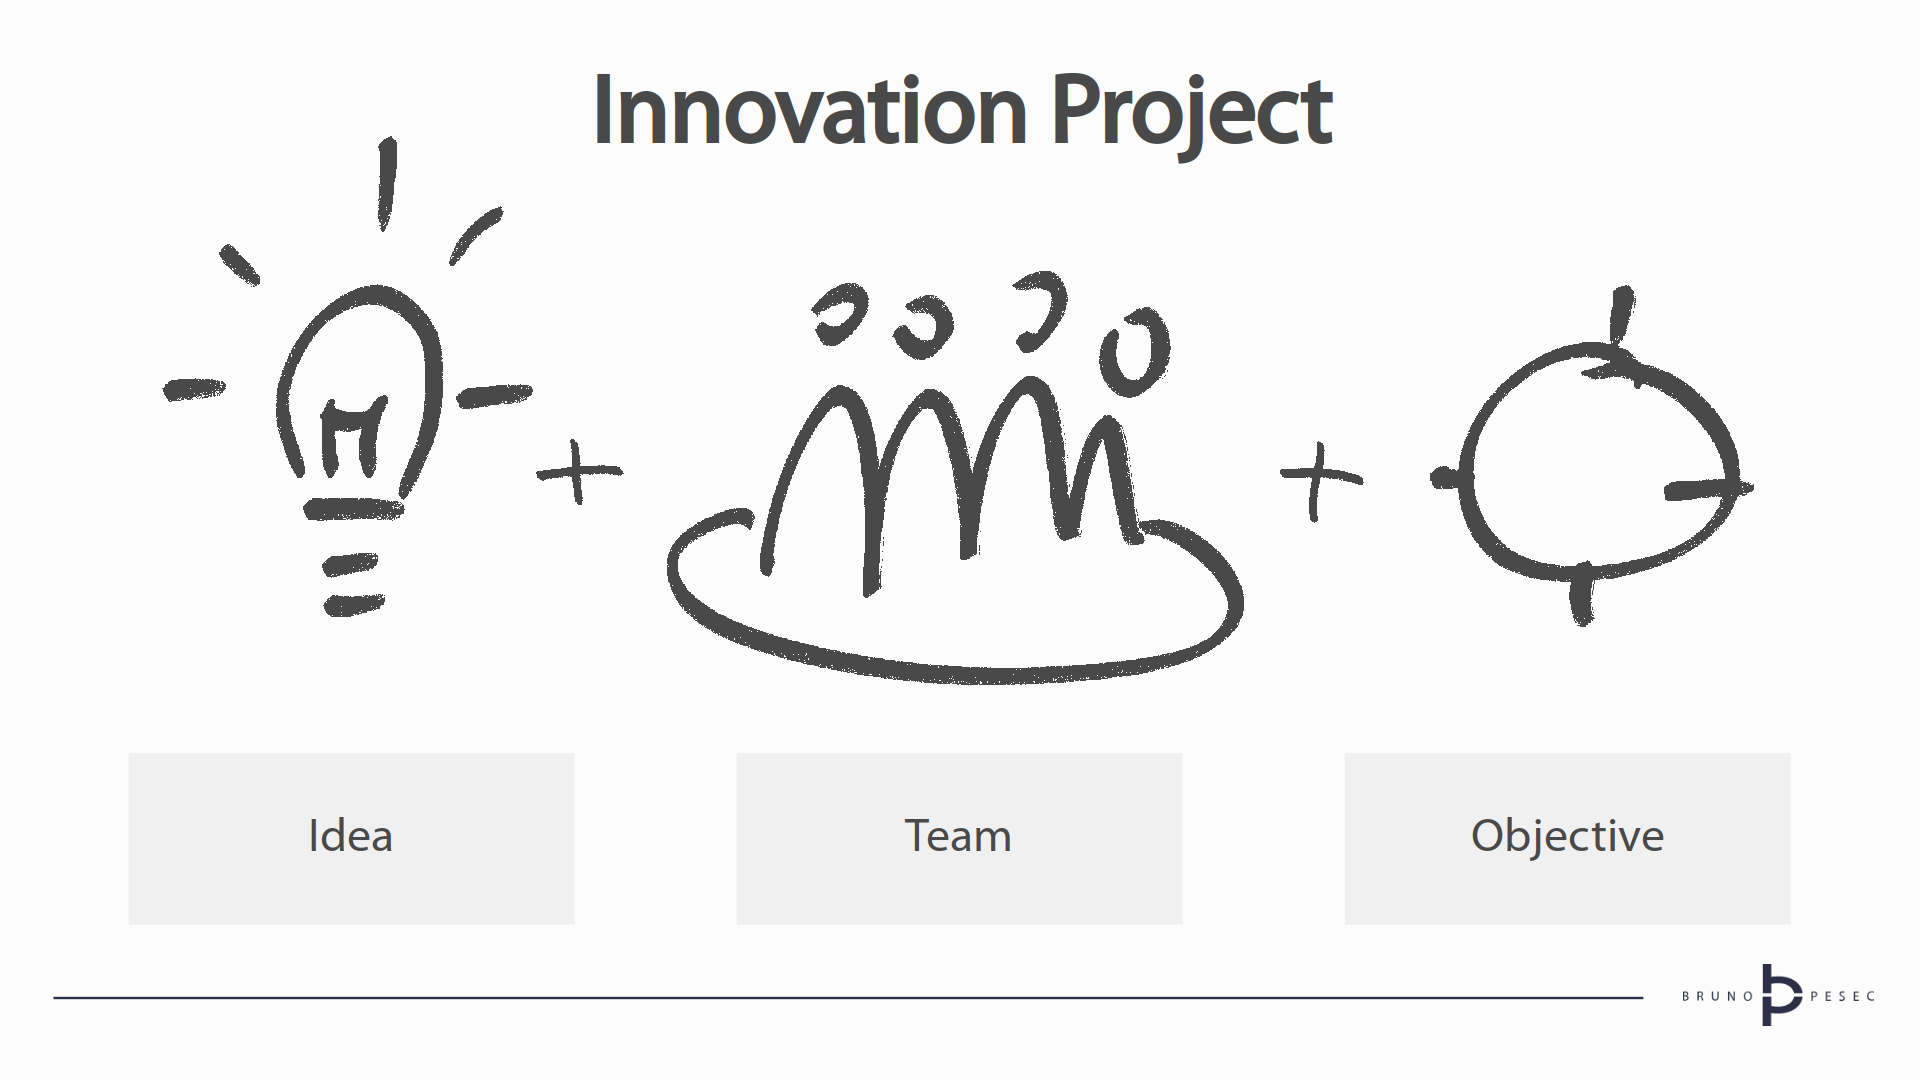 Innovation Project (© Bruno Pešec, 2020)